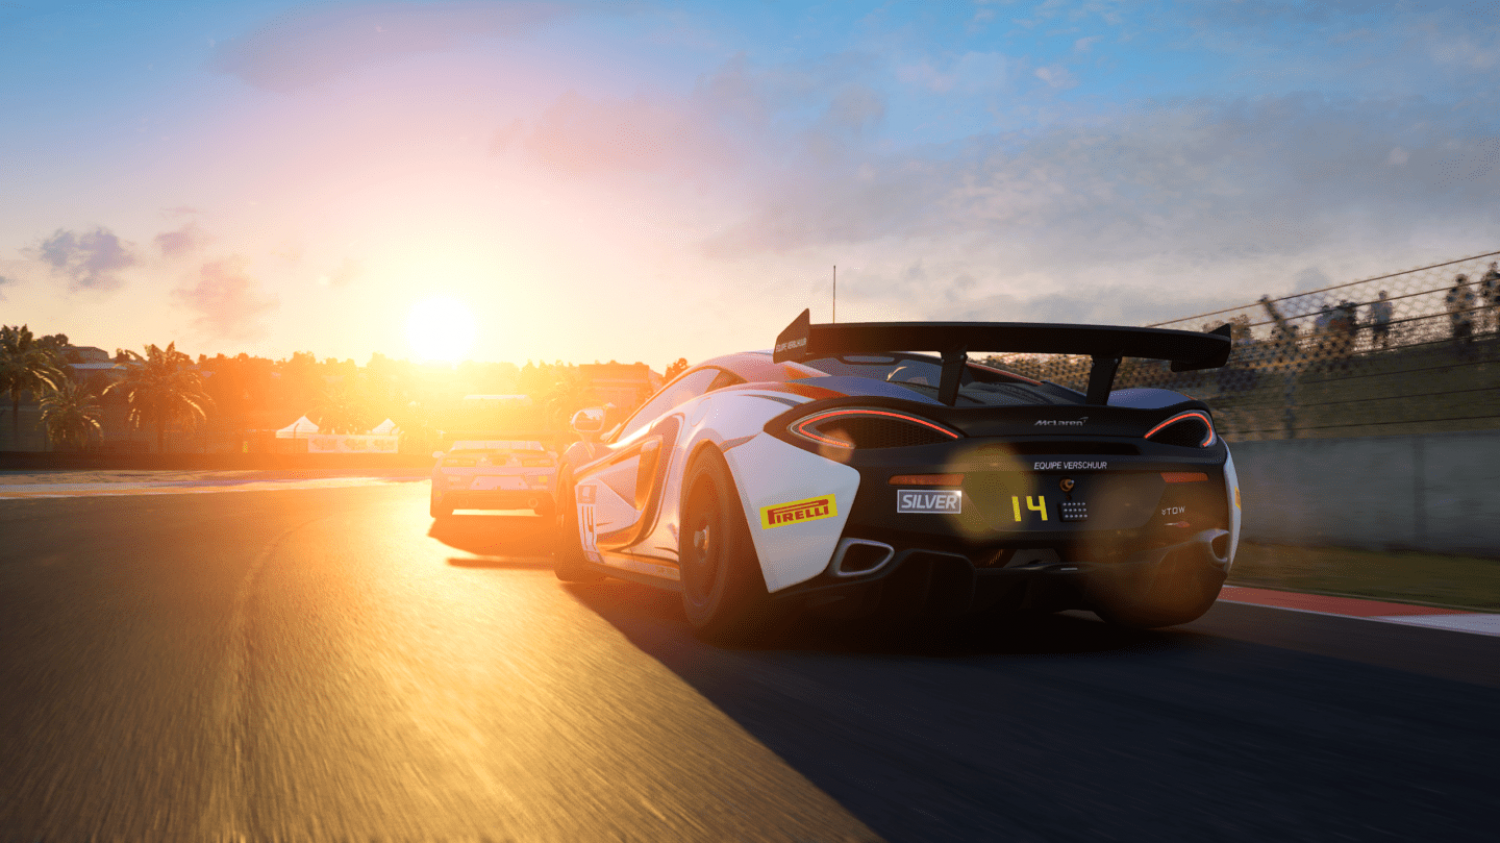 Qualify to Race in this season's FCP Euro GT World Challenge America Esports Championship